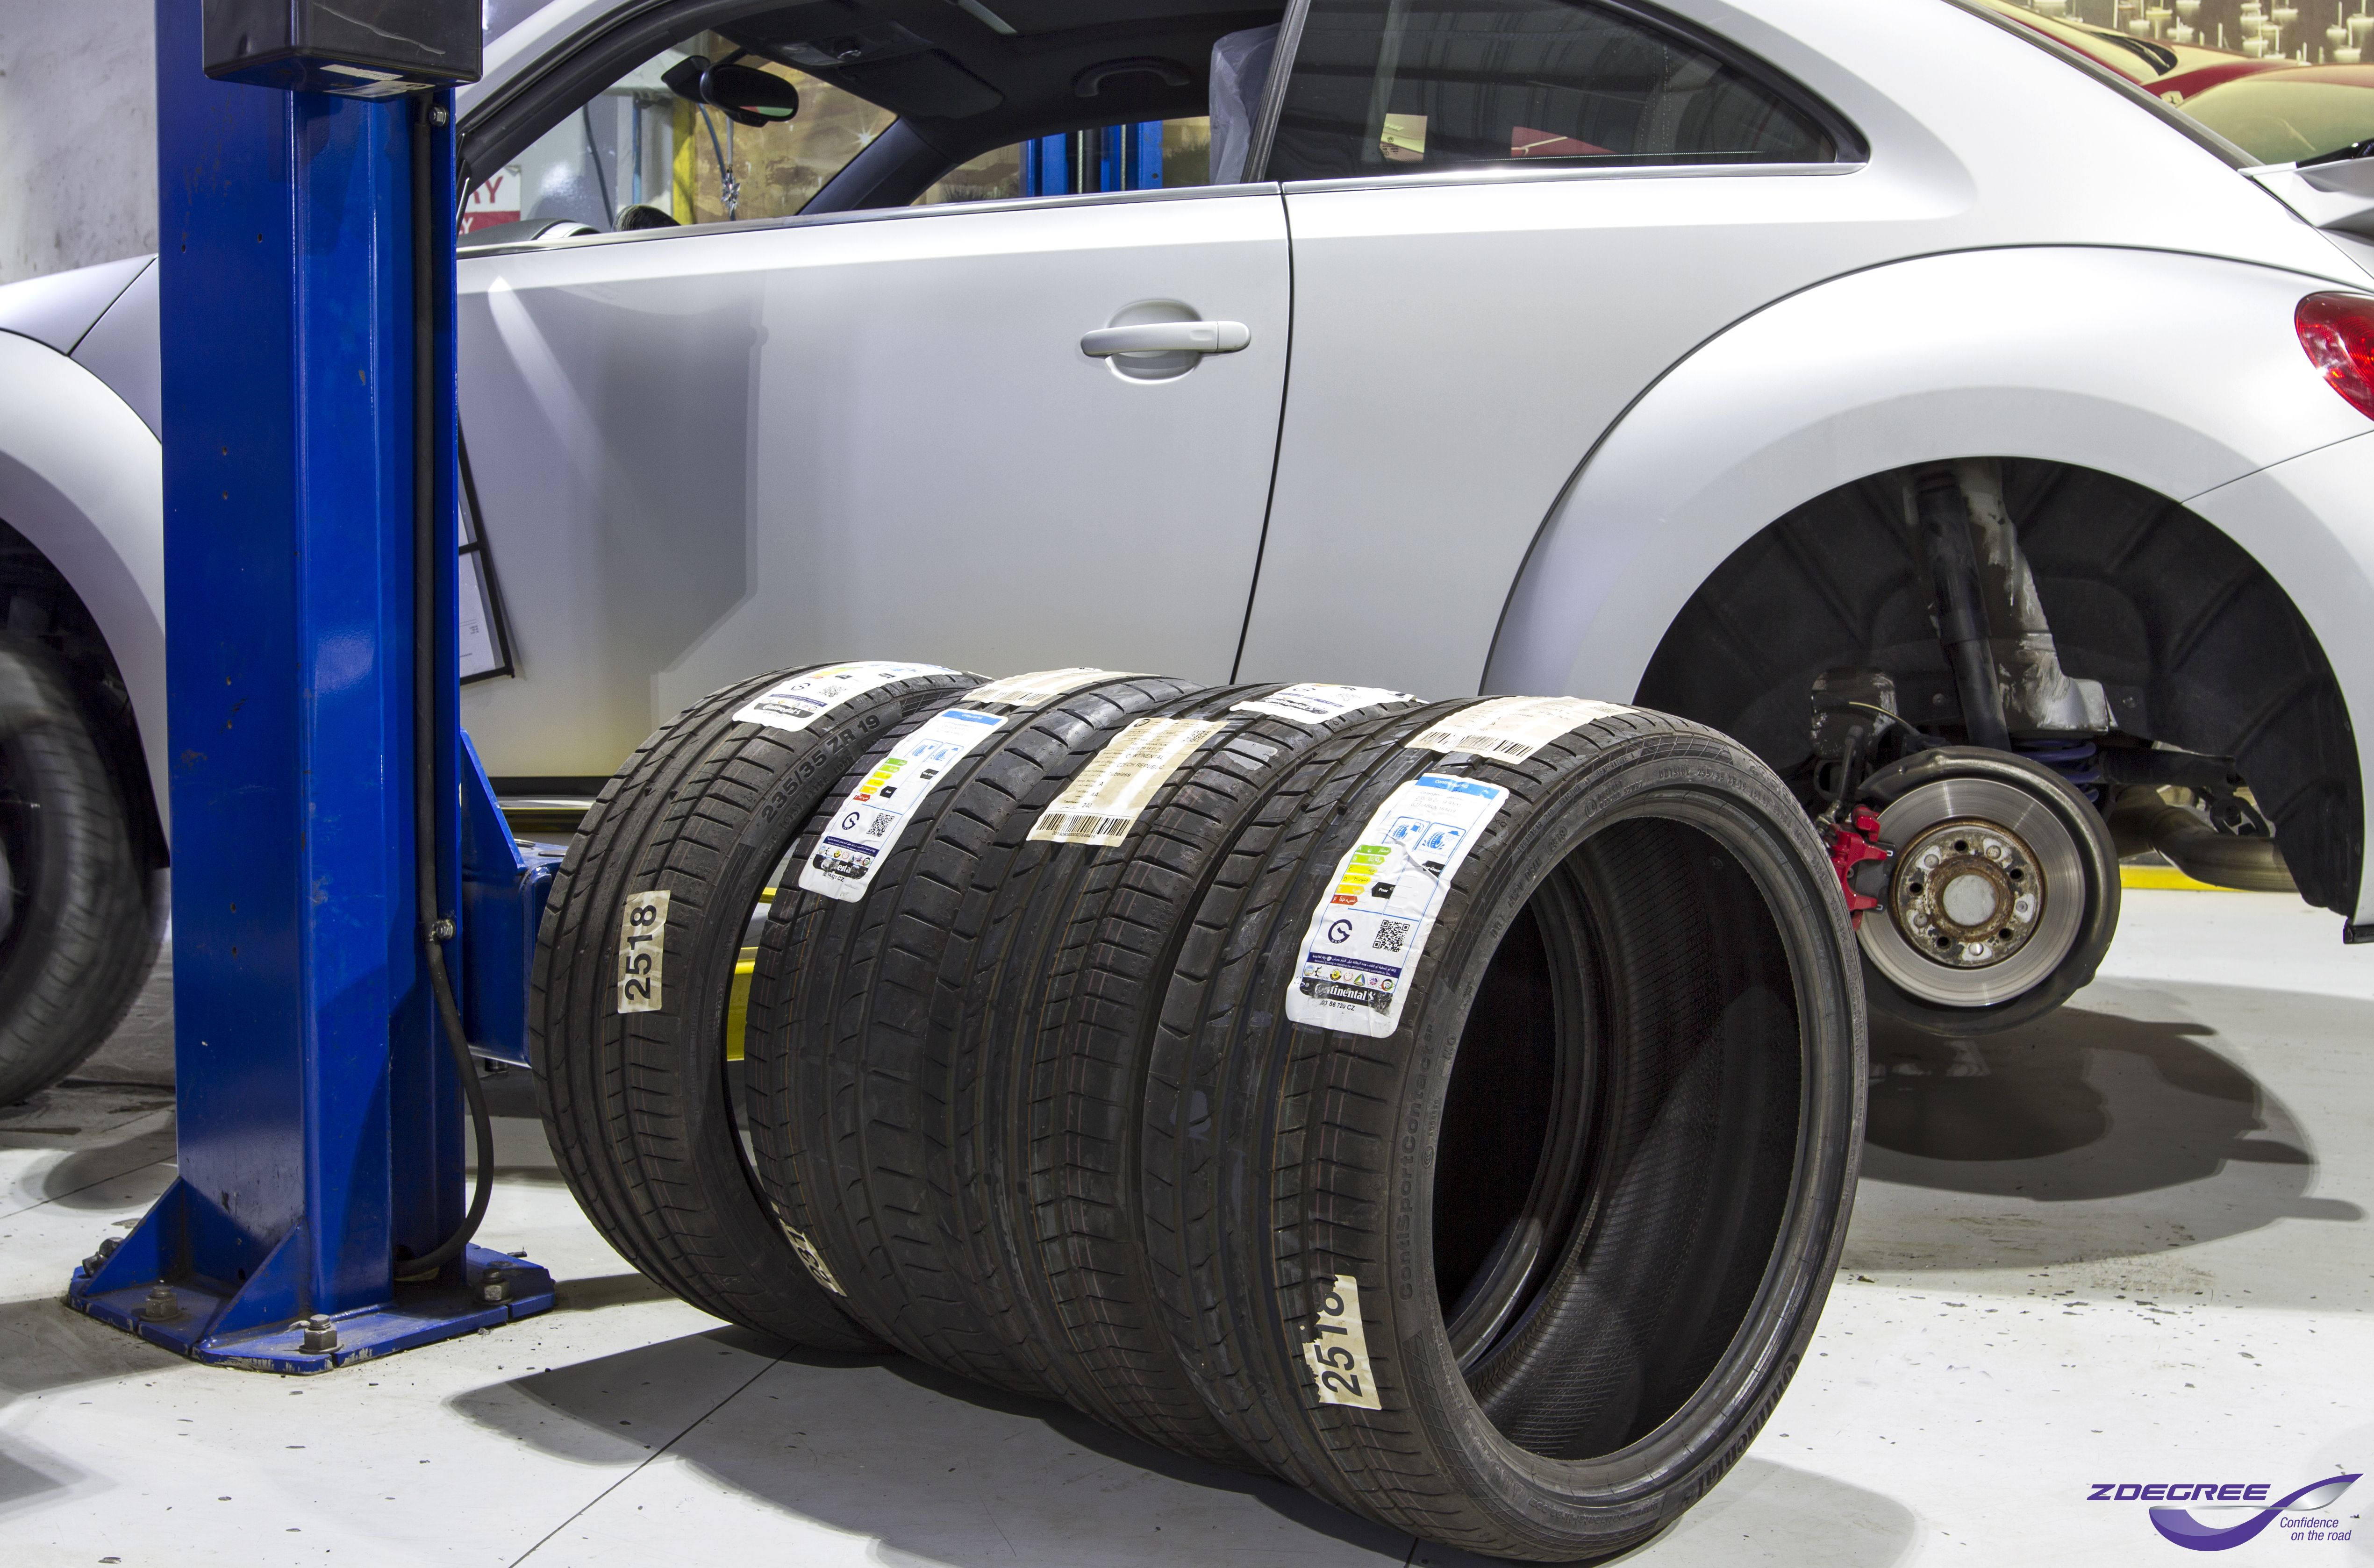 Vw Beetle In For New Tires Buy Tires Tyre Shop Auto Service